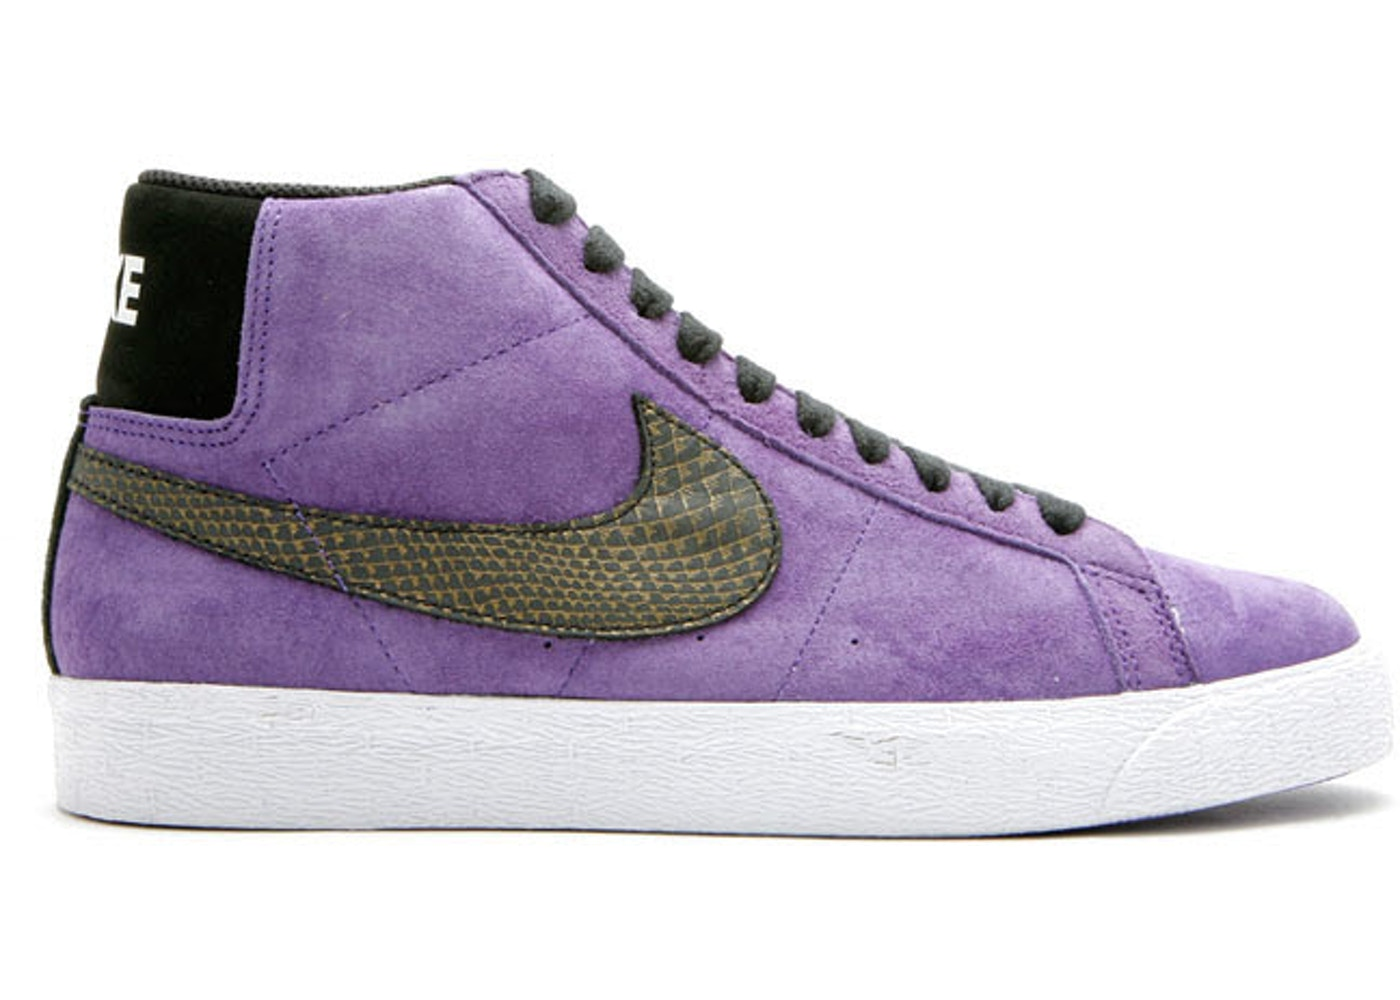 newest collection 847b8 f73f8 Nike SB Blazer Varsity Purple - 314070-501